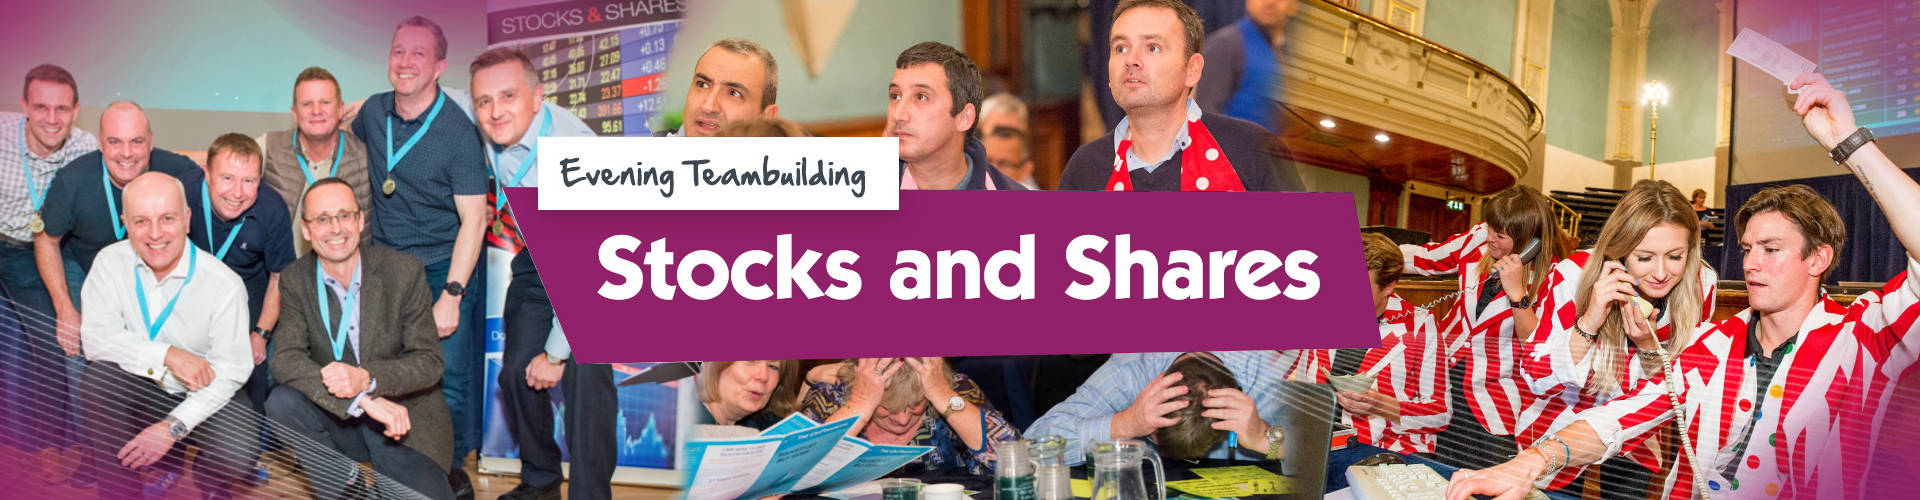 Teambuilding | Stocks & Shares